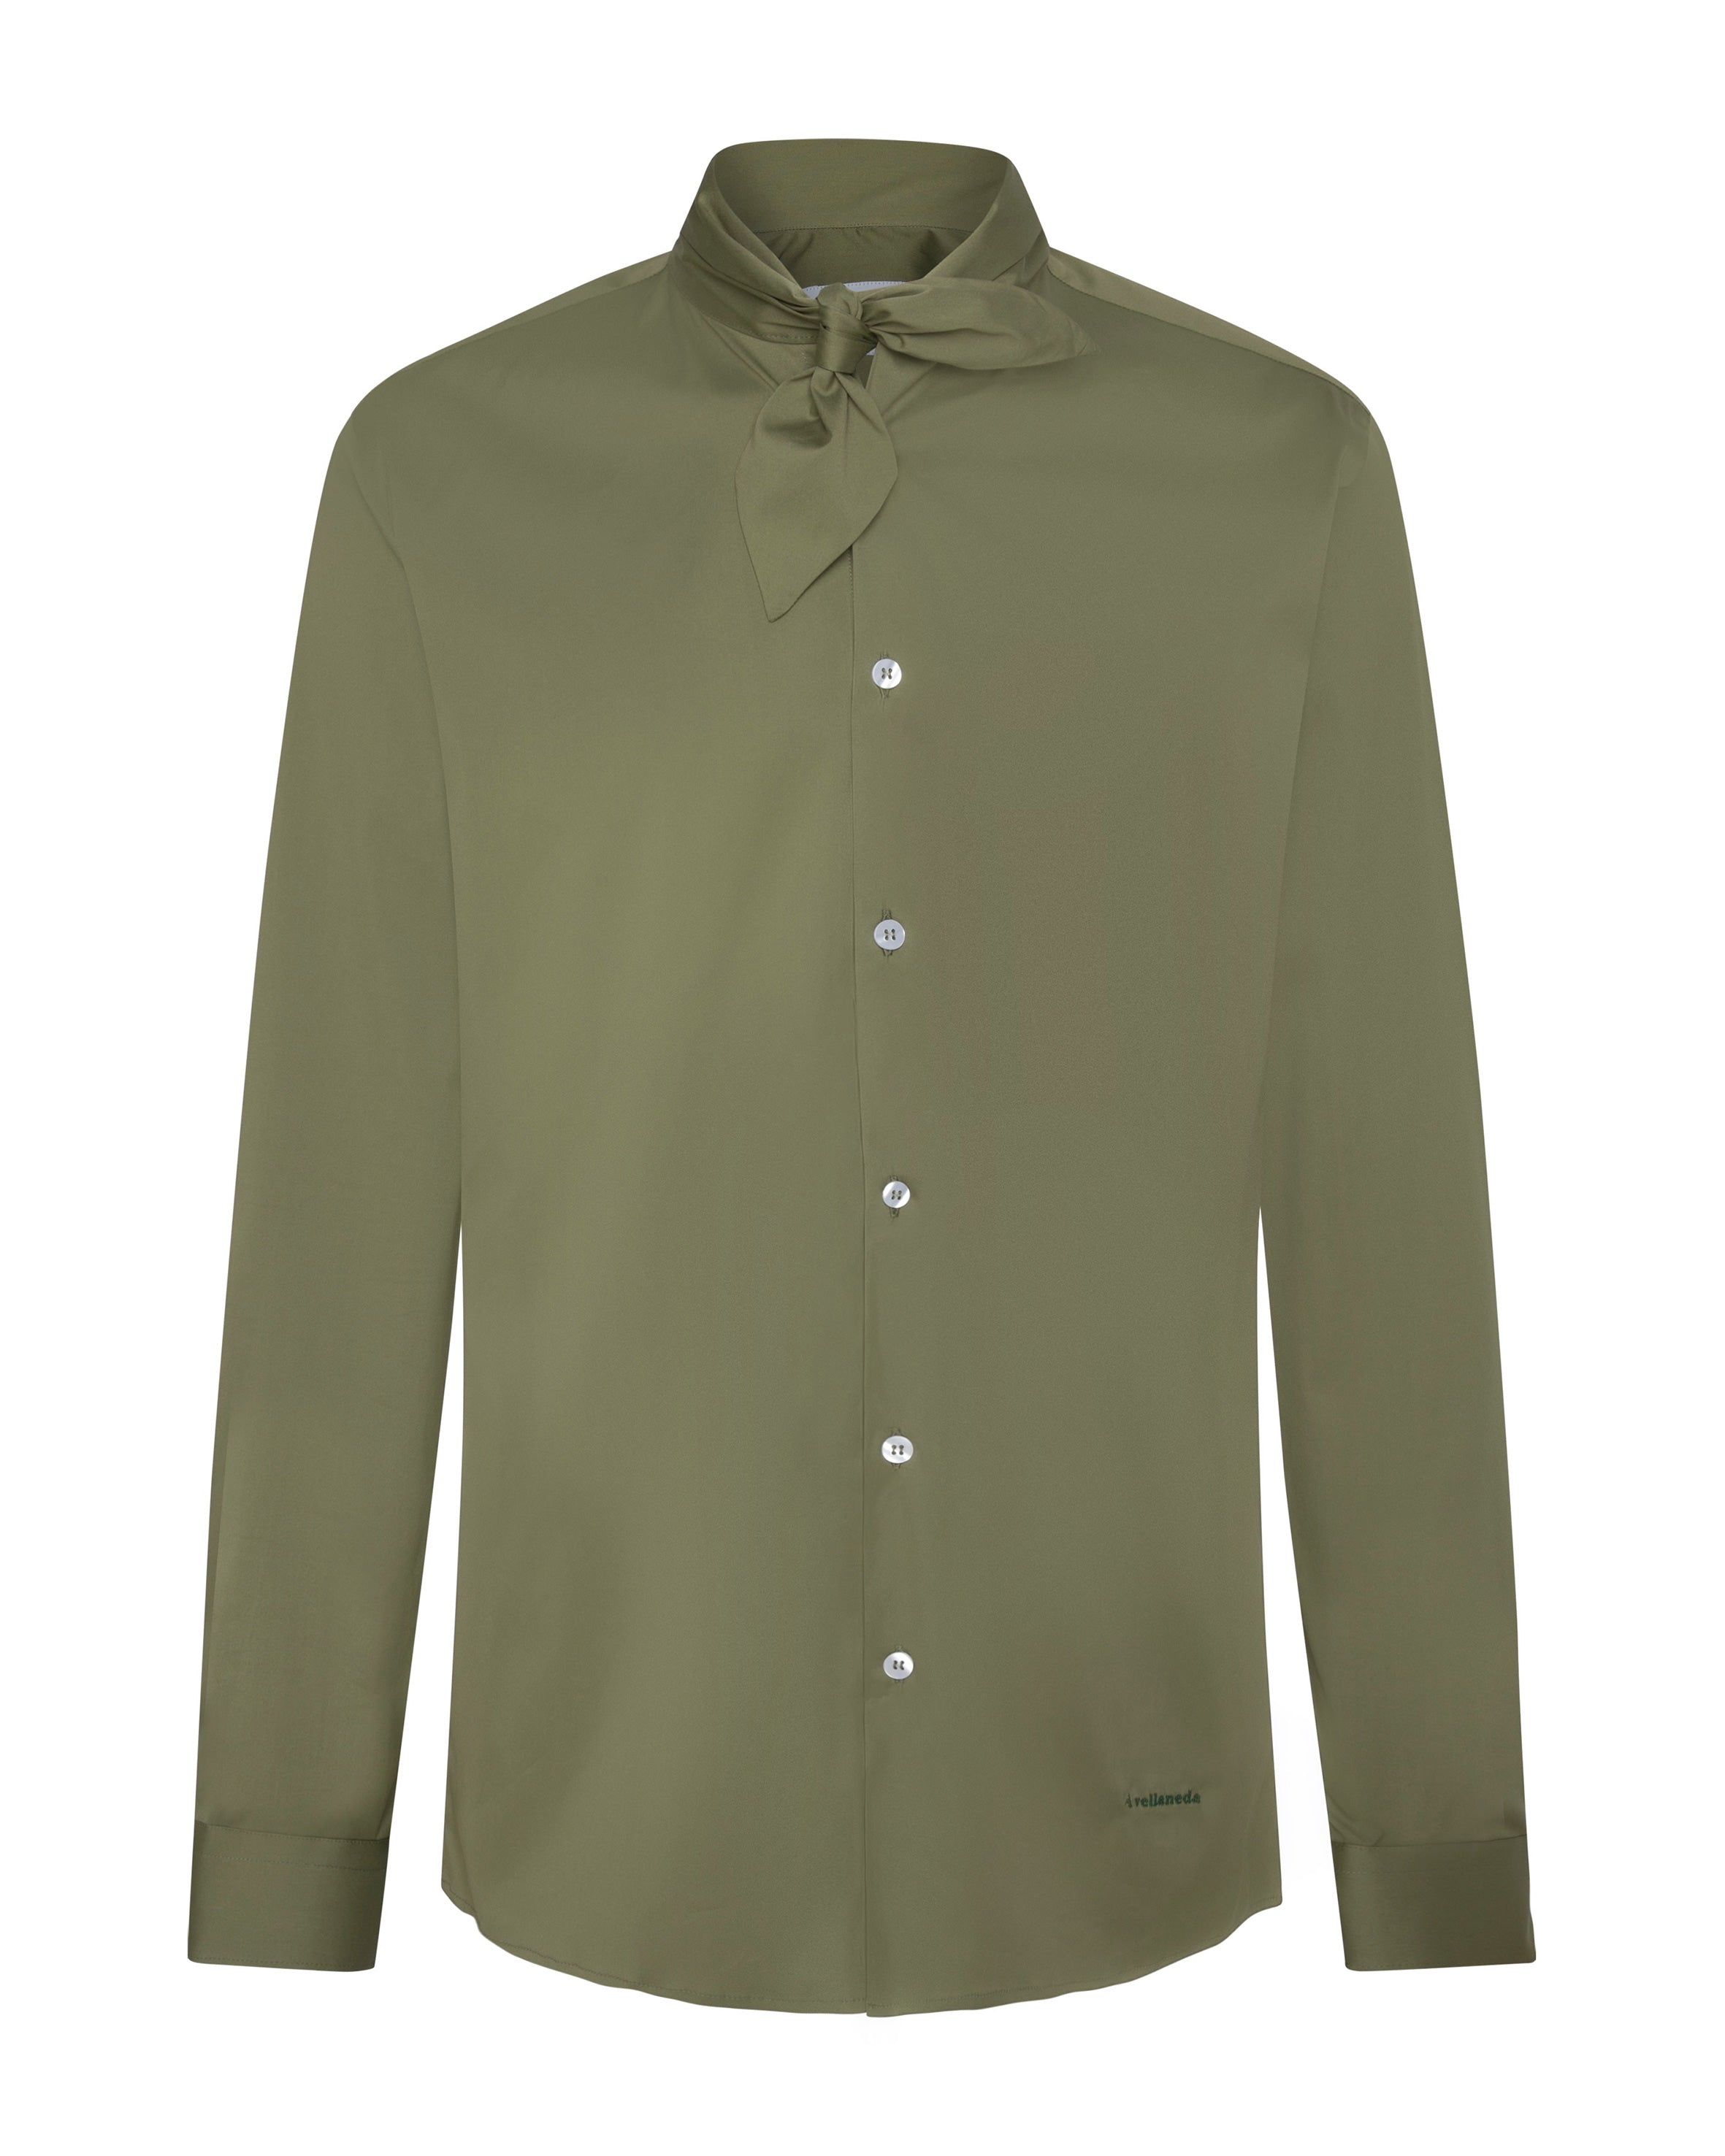 MEN'S GREEN DARCY SHIRT